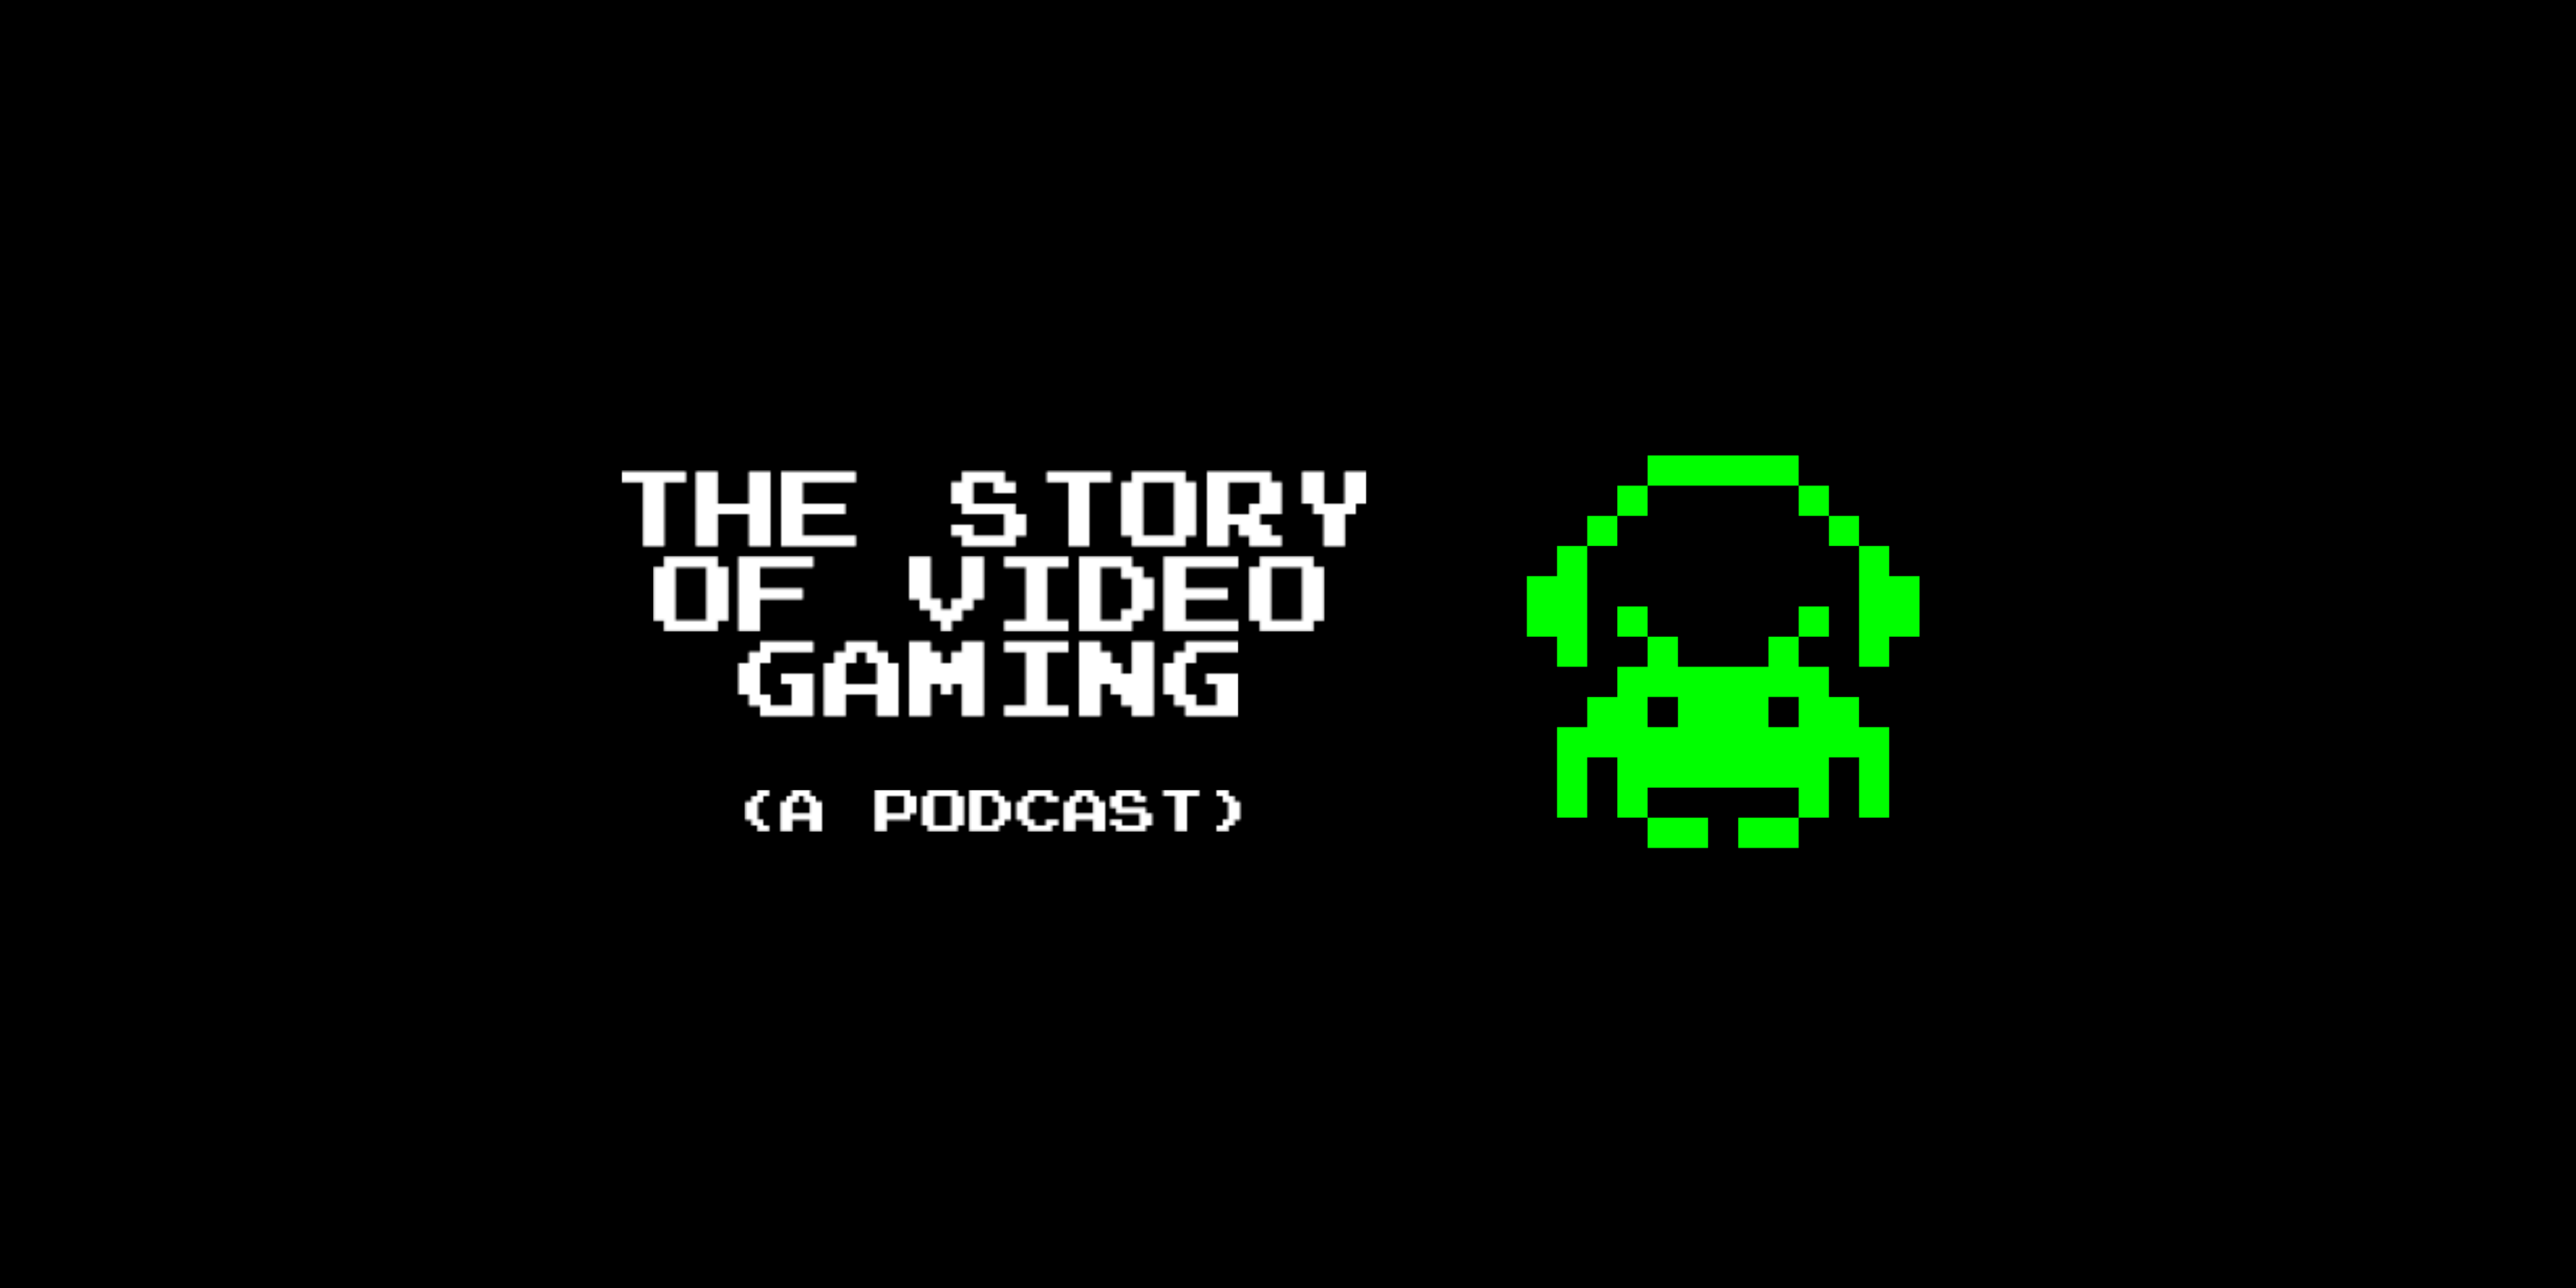 The Story of Video Gaming